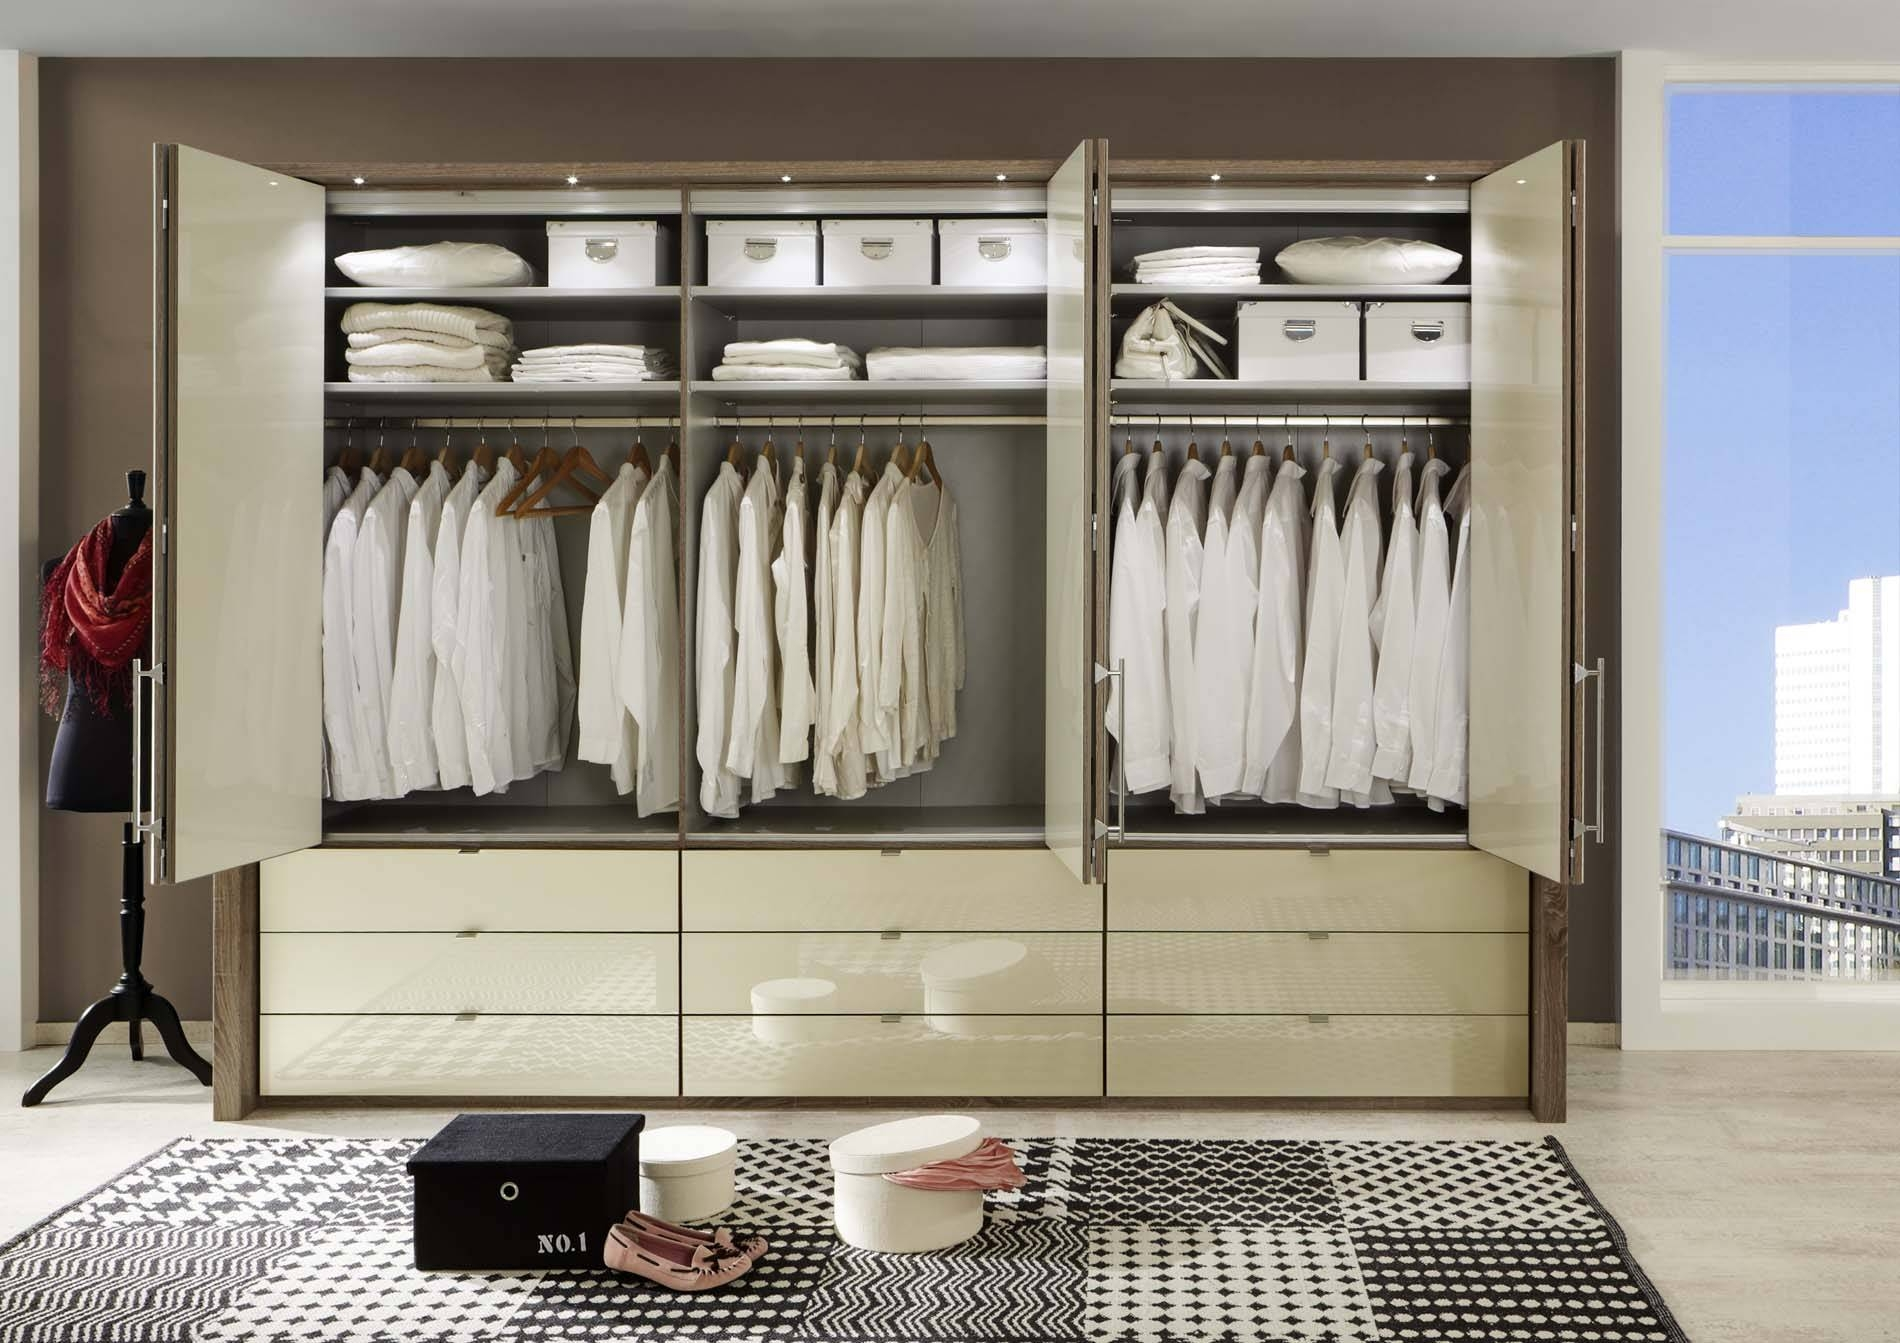 Kensington 6 Door 9 Drawer Wardrobe | Crendon Beds inside 6 Door Wardrobes Bedroom Furniture (Image 13 of 15)